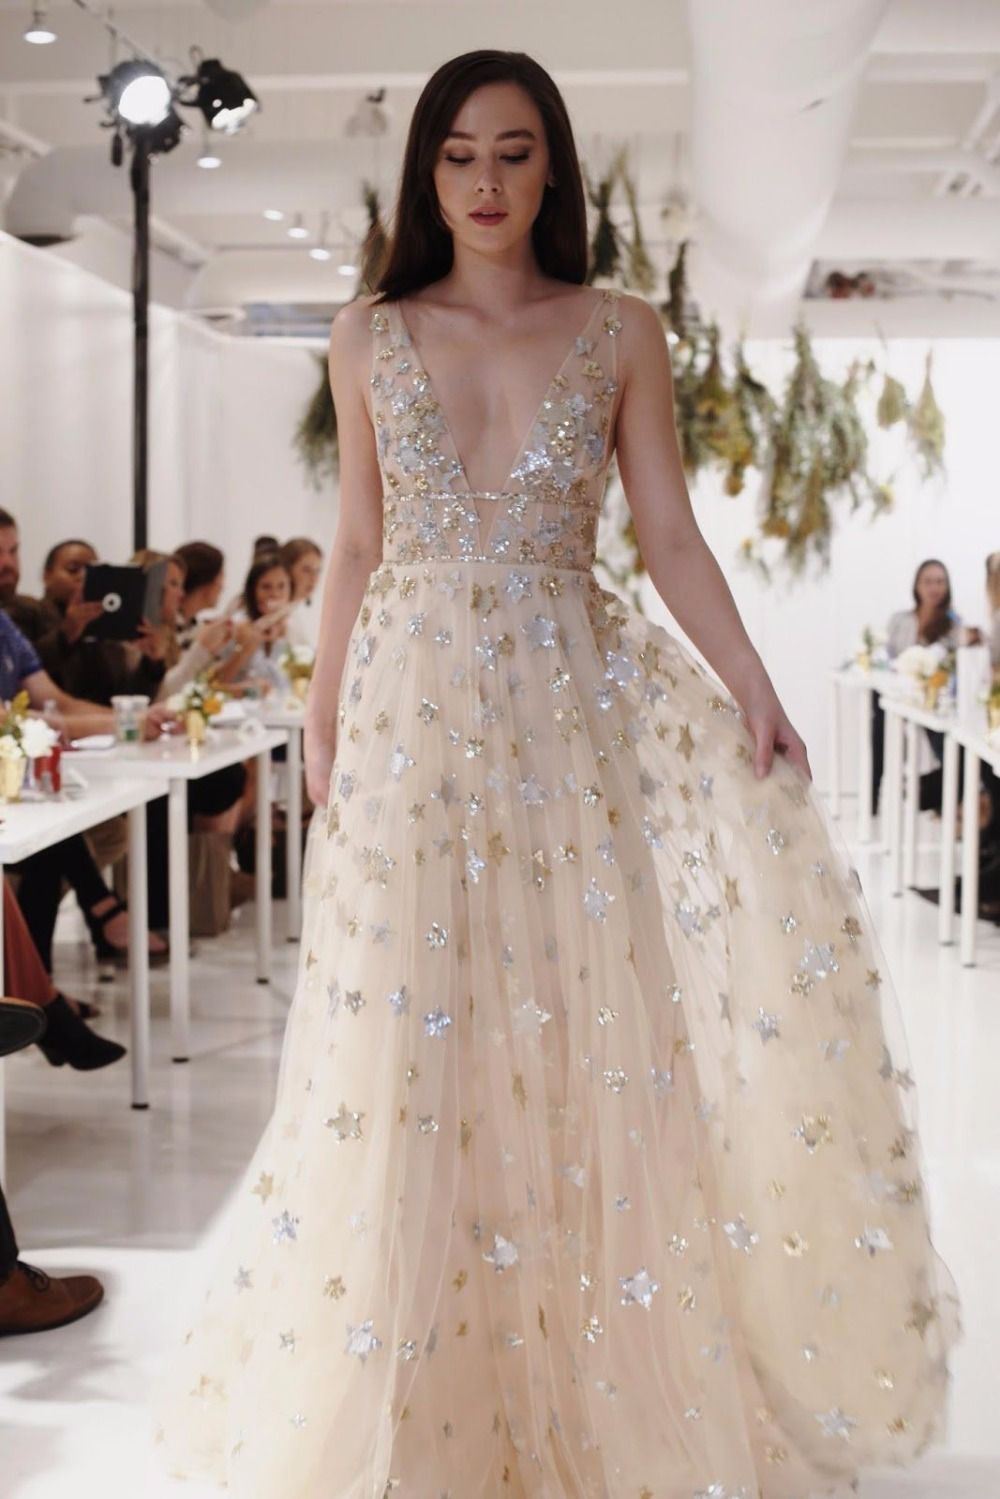 This Star Wedding Dress Is A Celestial Dream Willow By Orion Part Of The Spring 2018 Collection 2018weddingtrend